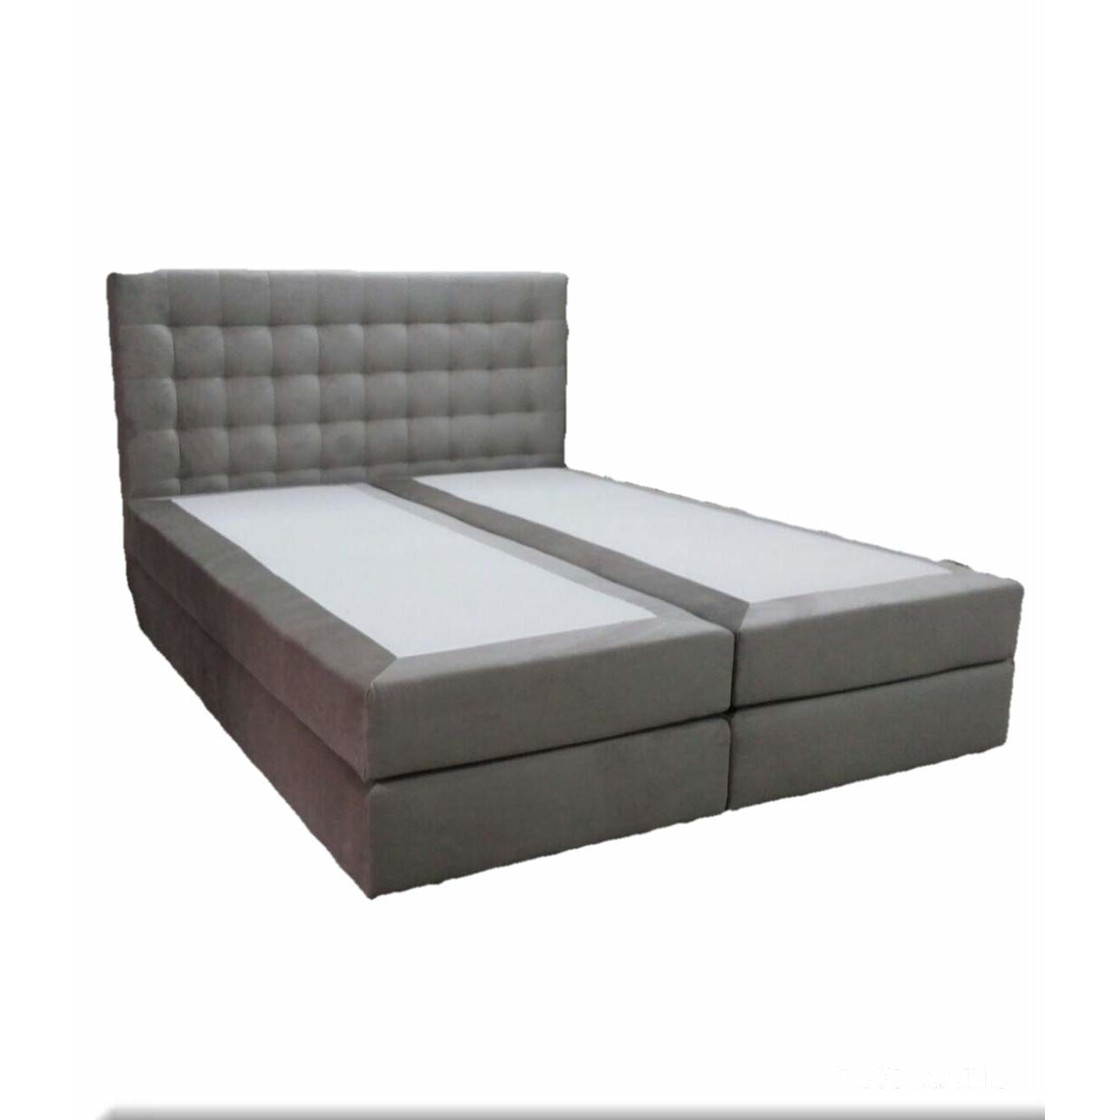 Full Size of Barock Bett 180x200 Boxspringbett Doppelbett Mit Style Liegeflche Clinique Even Better Make Up Boxspring Rauch Betten Home Affaire Bette Starlet Kopfteile Für Wohnzimmer Barock Bett 180x200